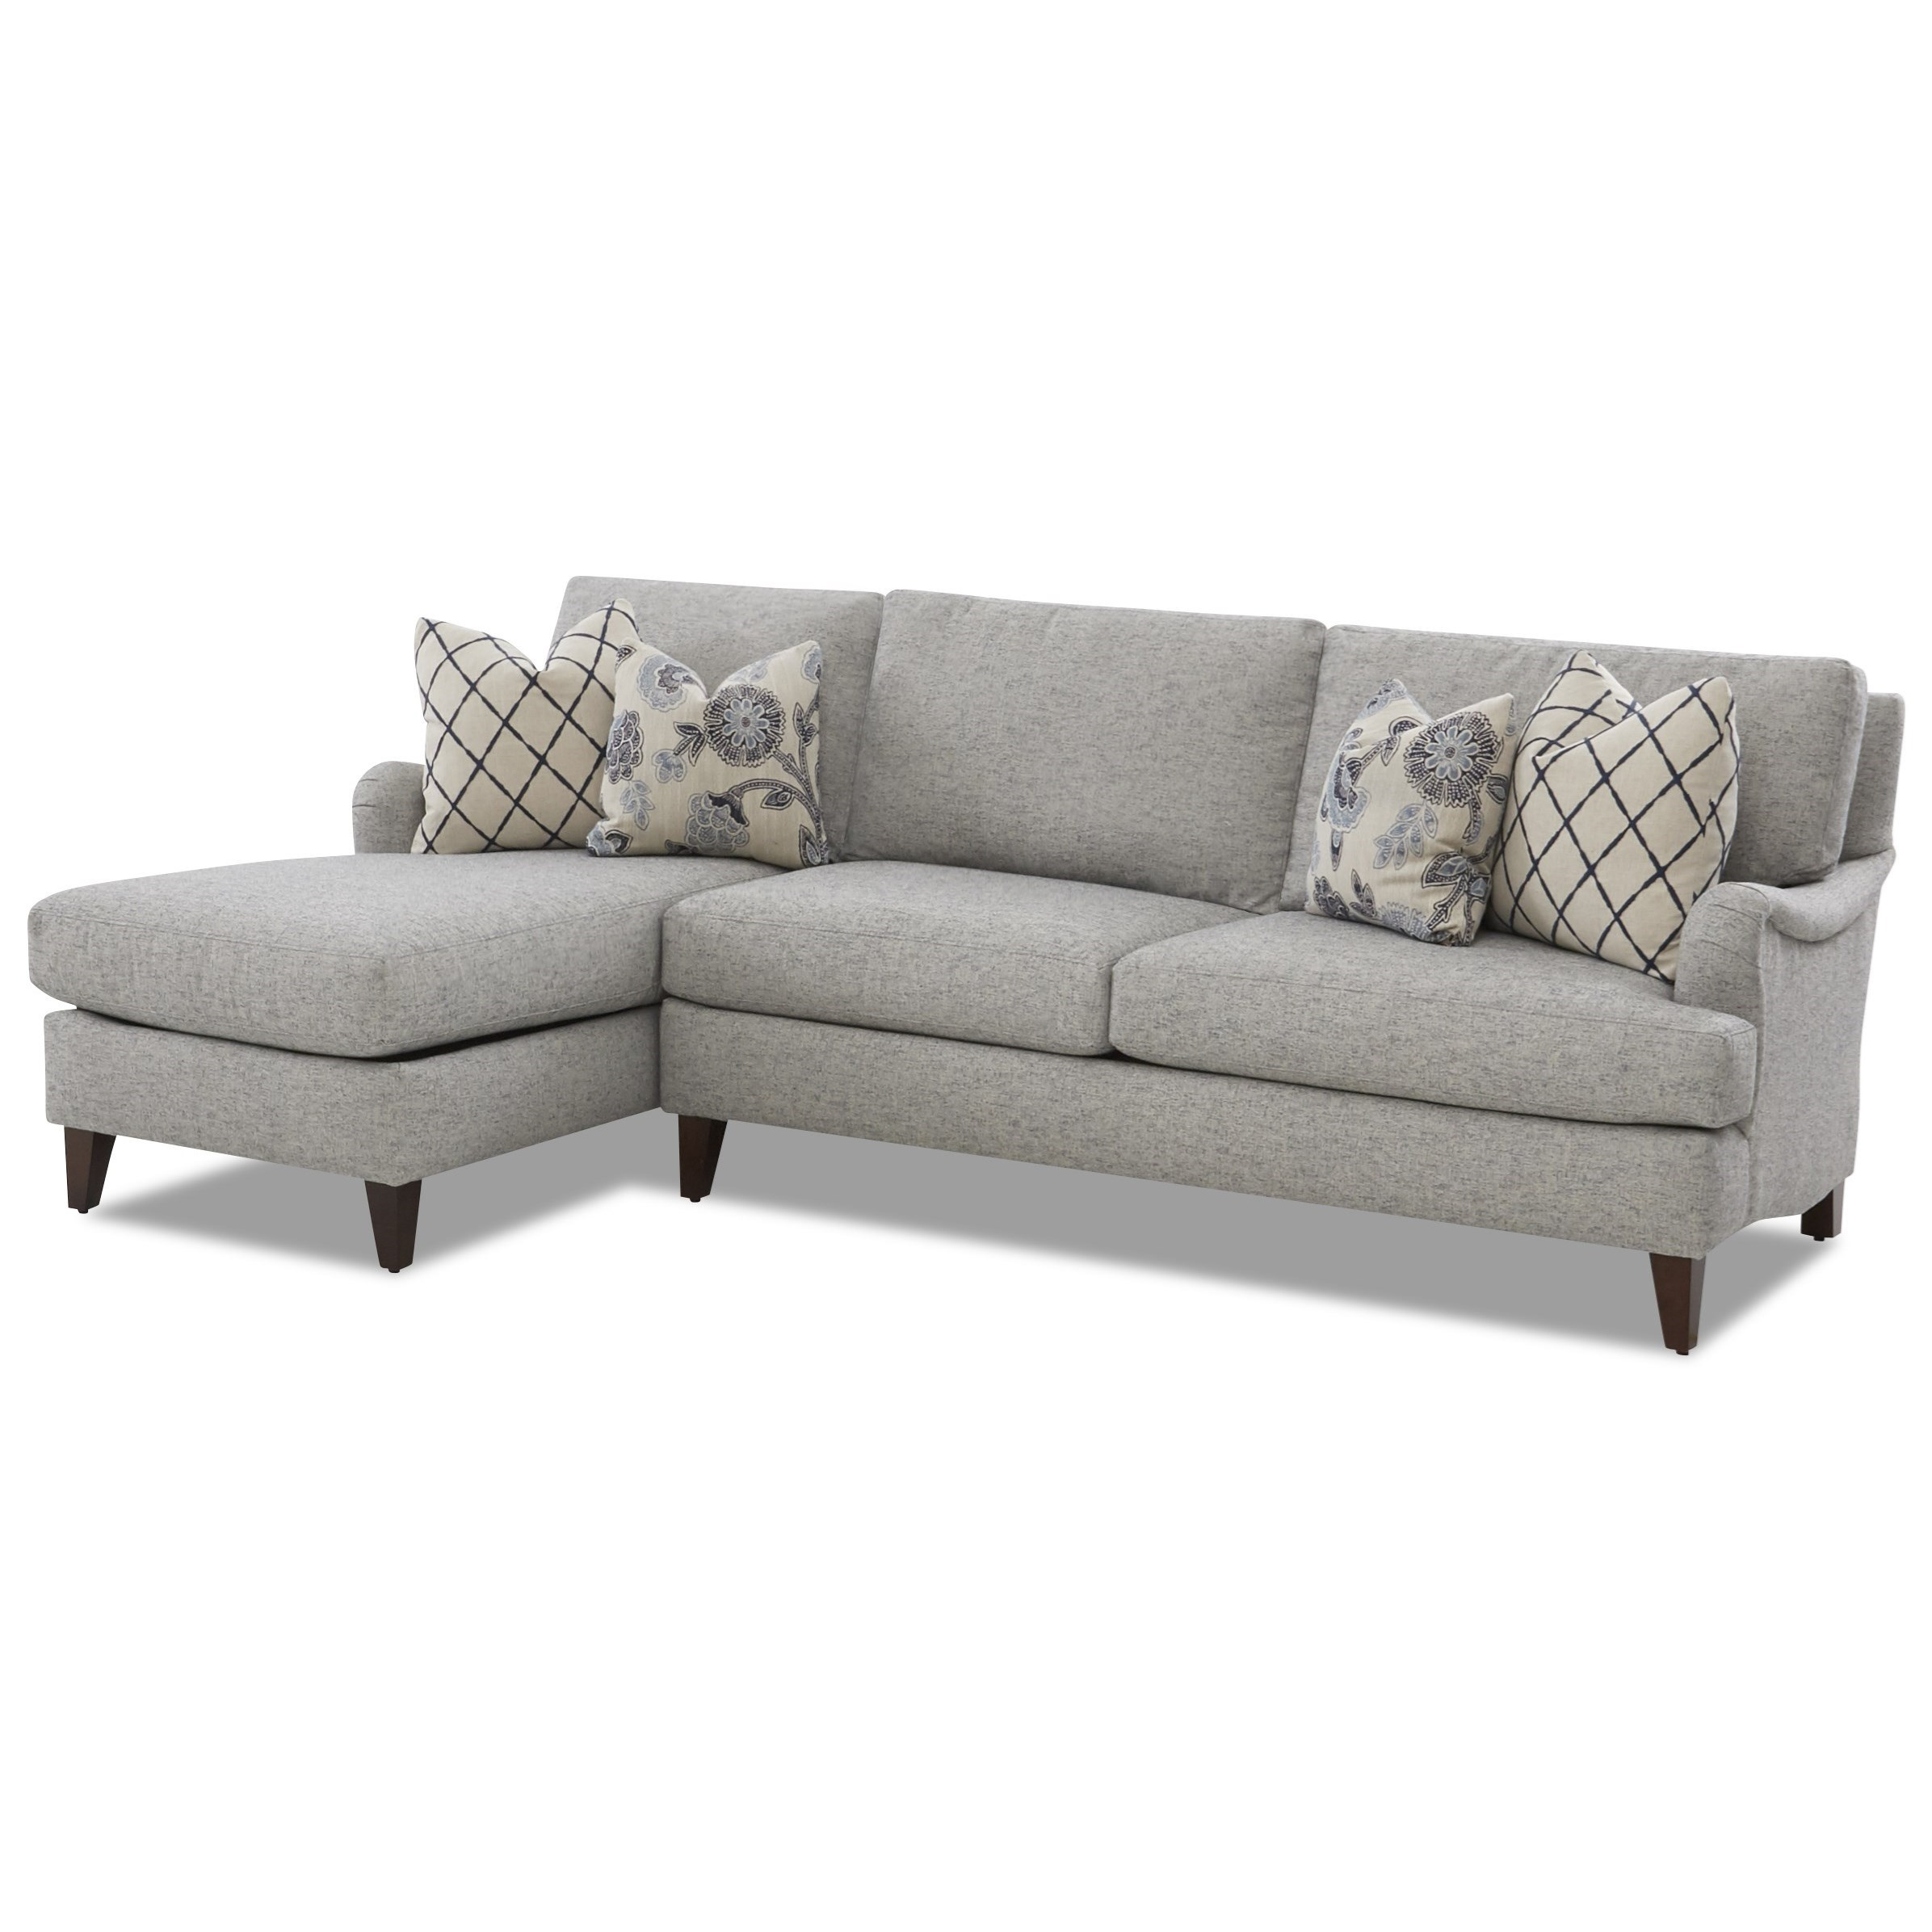 Alden Sofa Chaise by Klaussner at Northeast Factory Direct